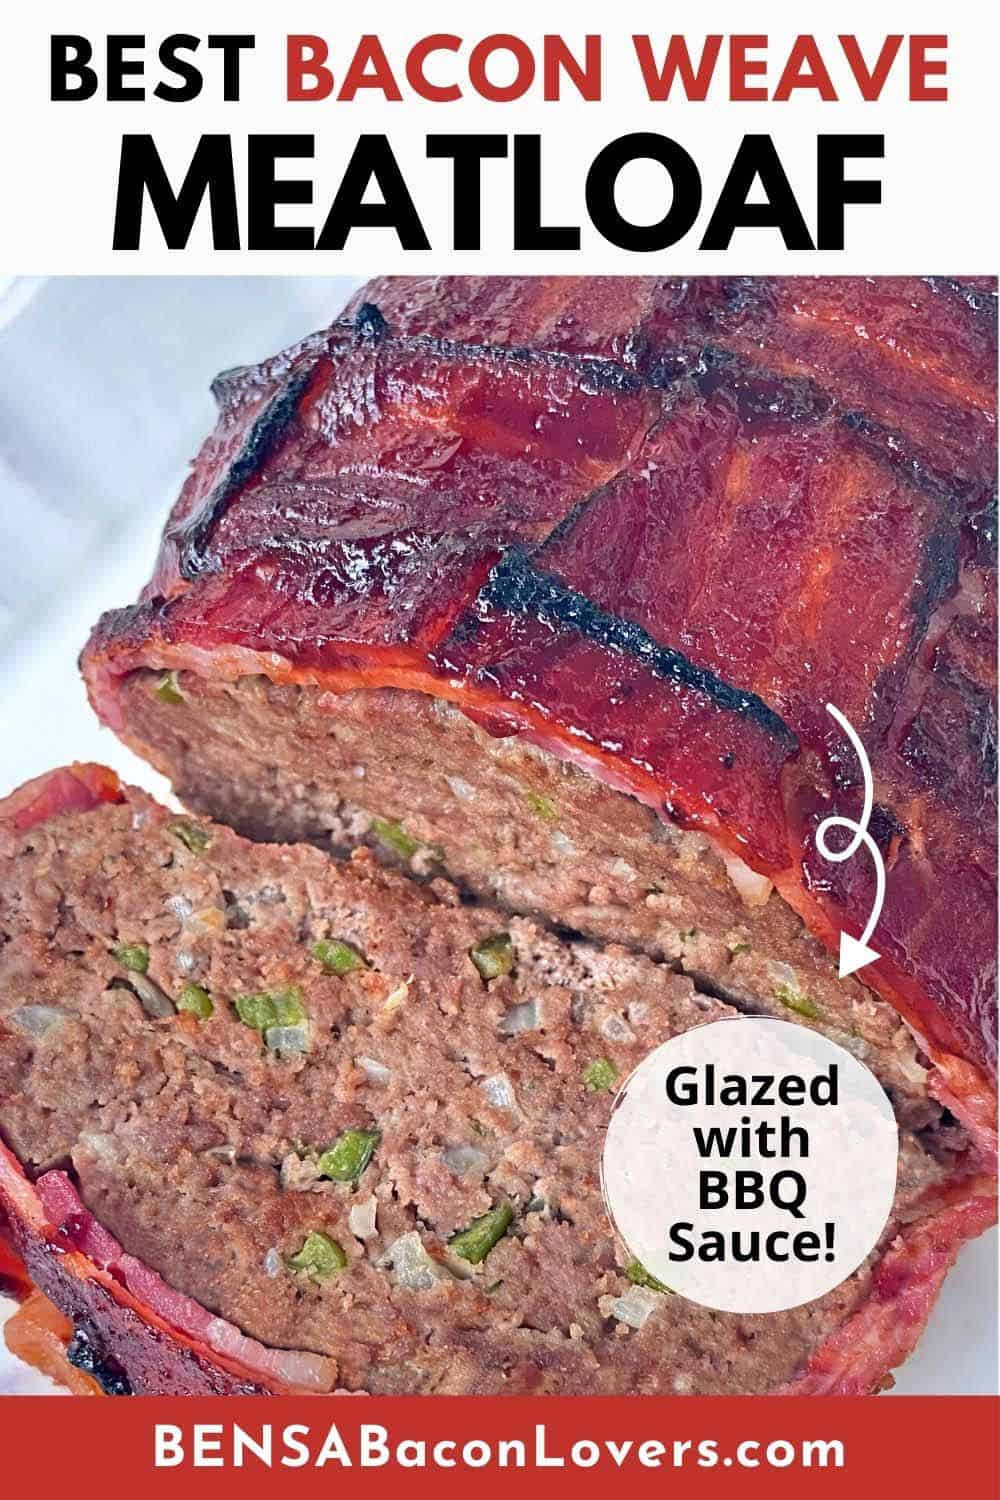 A Pinterest pin with the Best Bacon Weave Meatloaf headline and photo